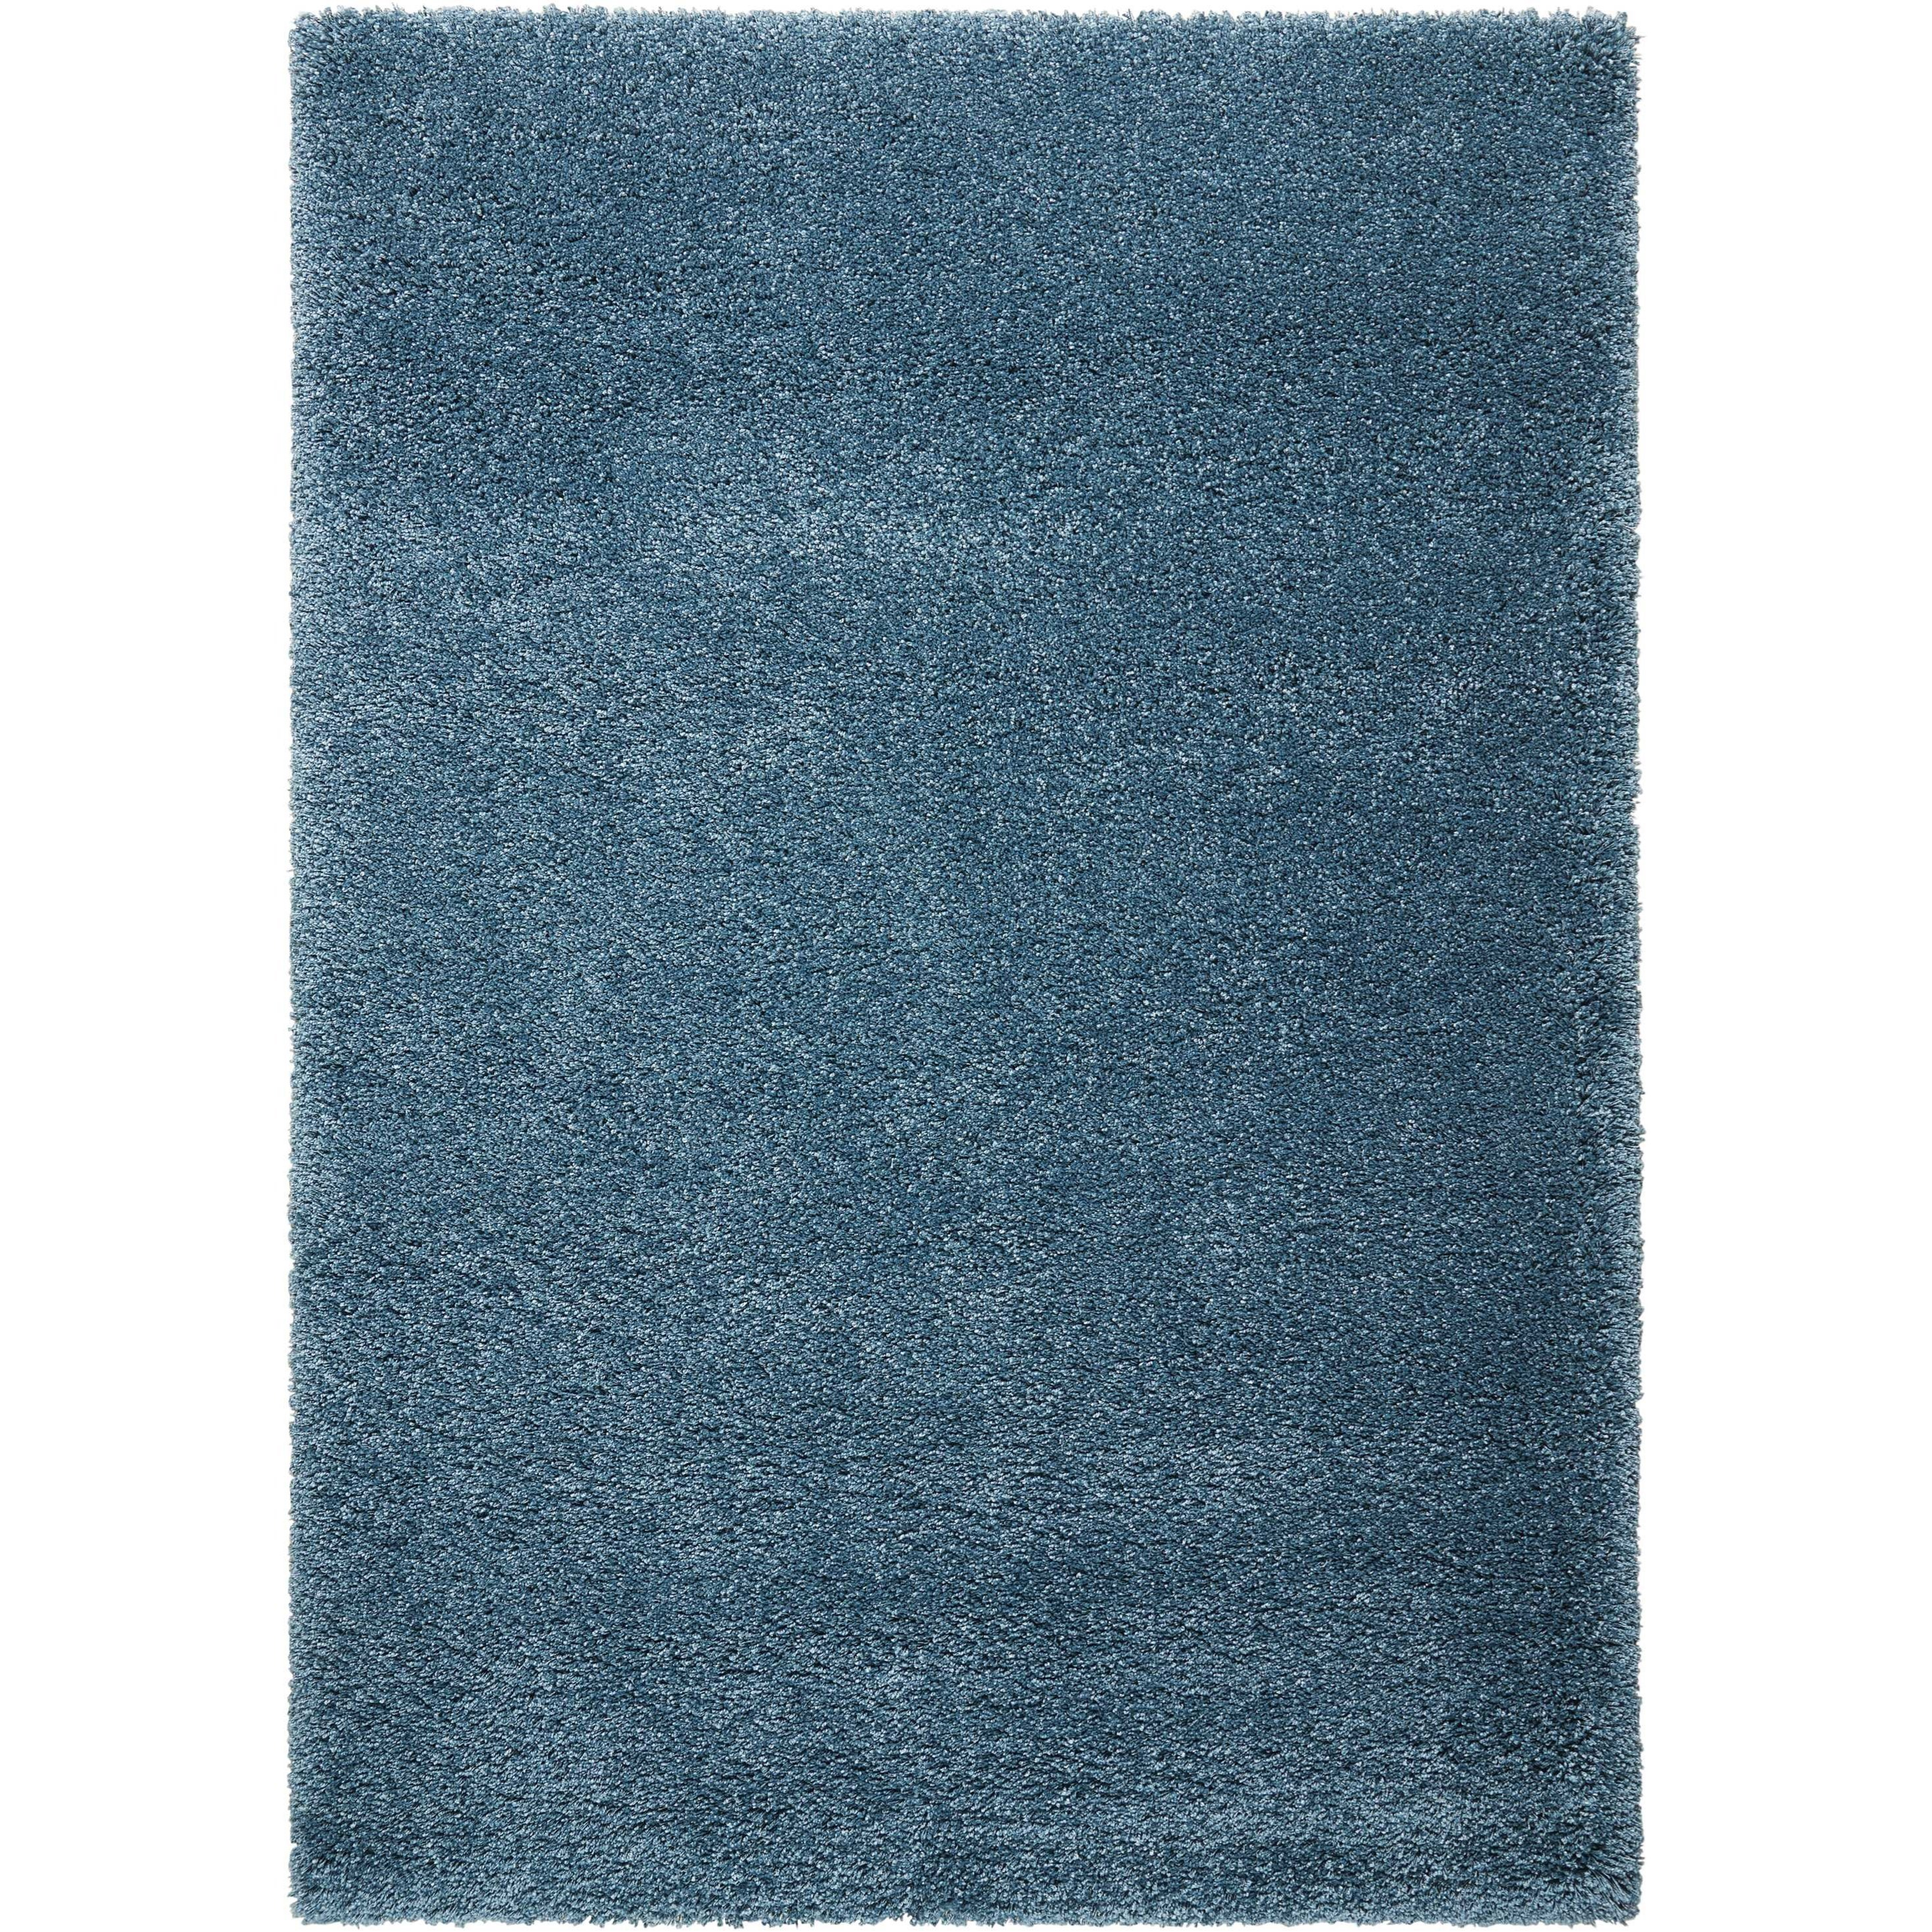 "Amore2 3'11"" X 5'11"" Slate Blue Rug by Nourison at Home Collections Furniture"